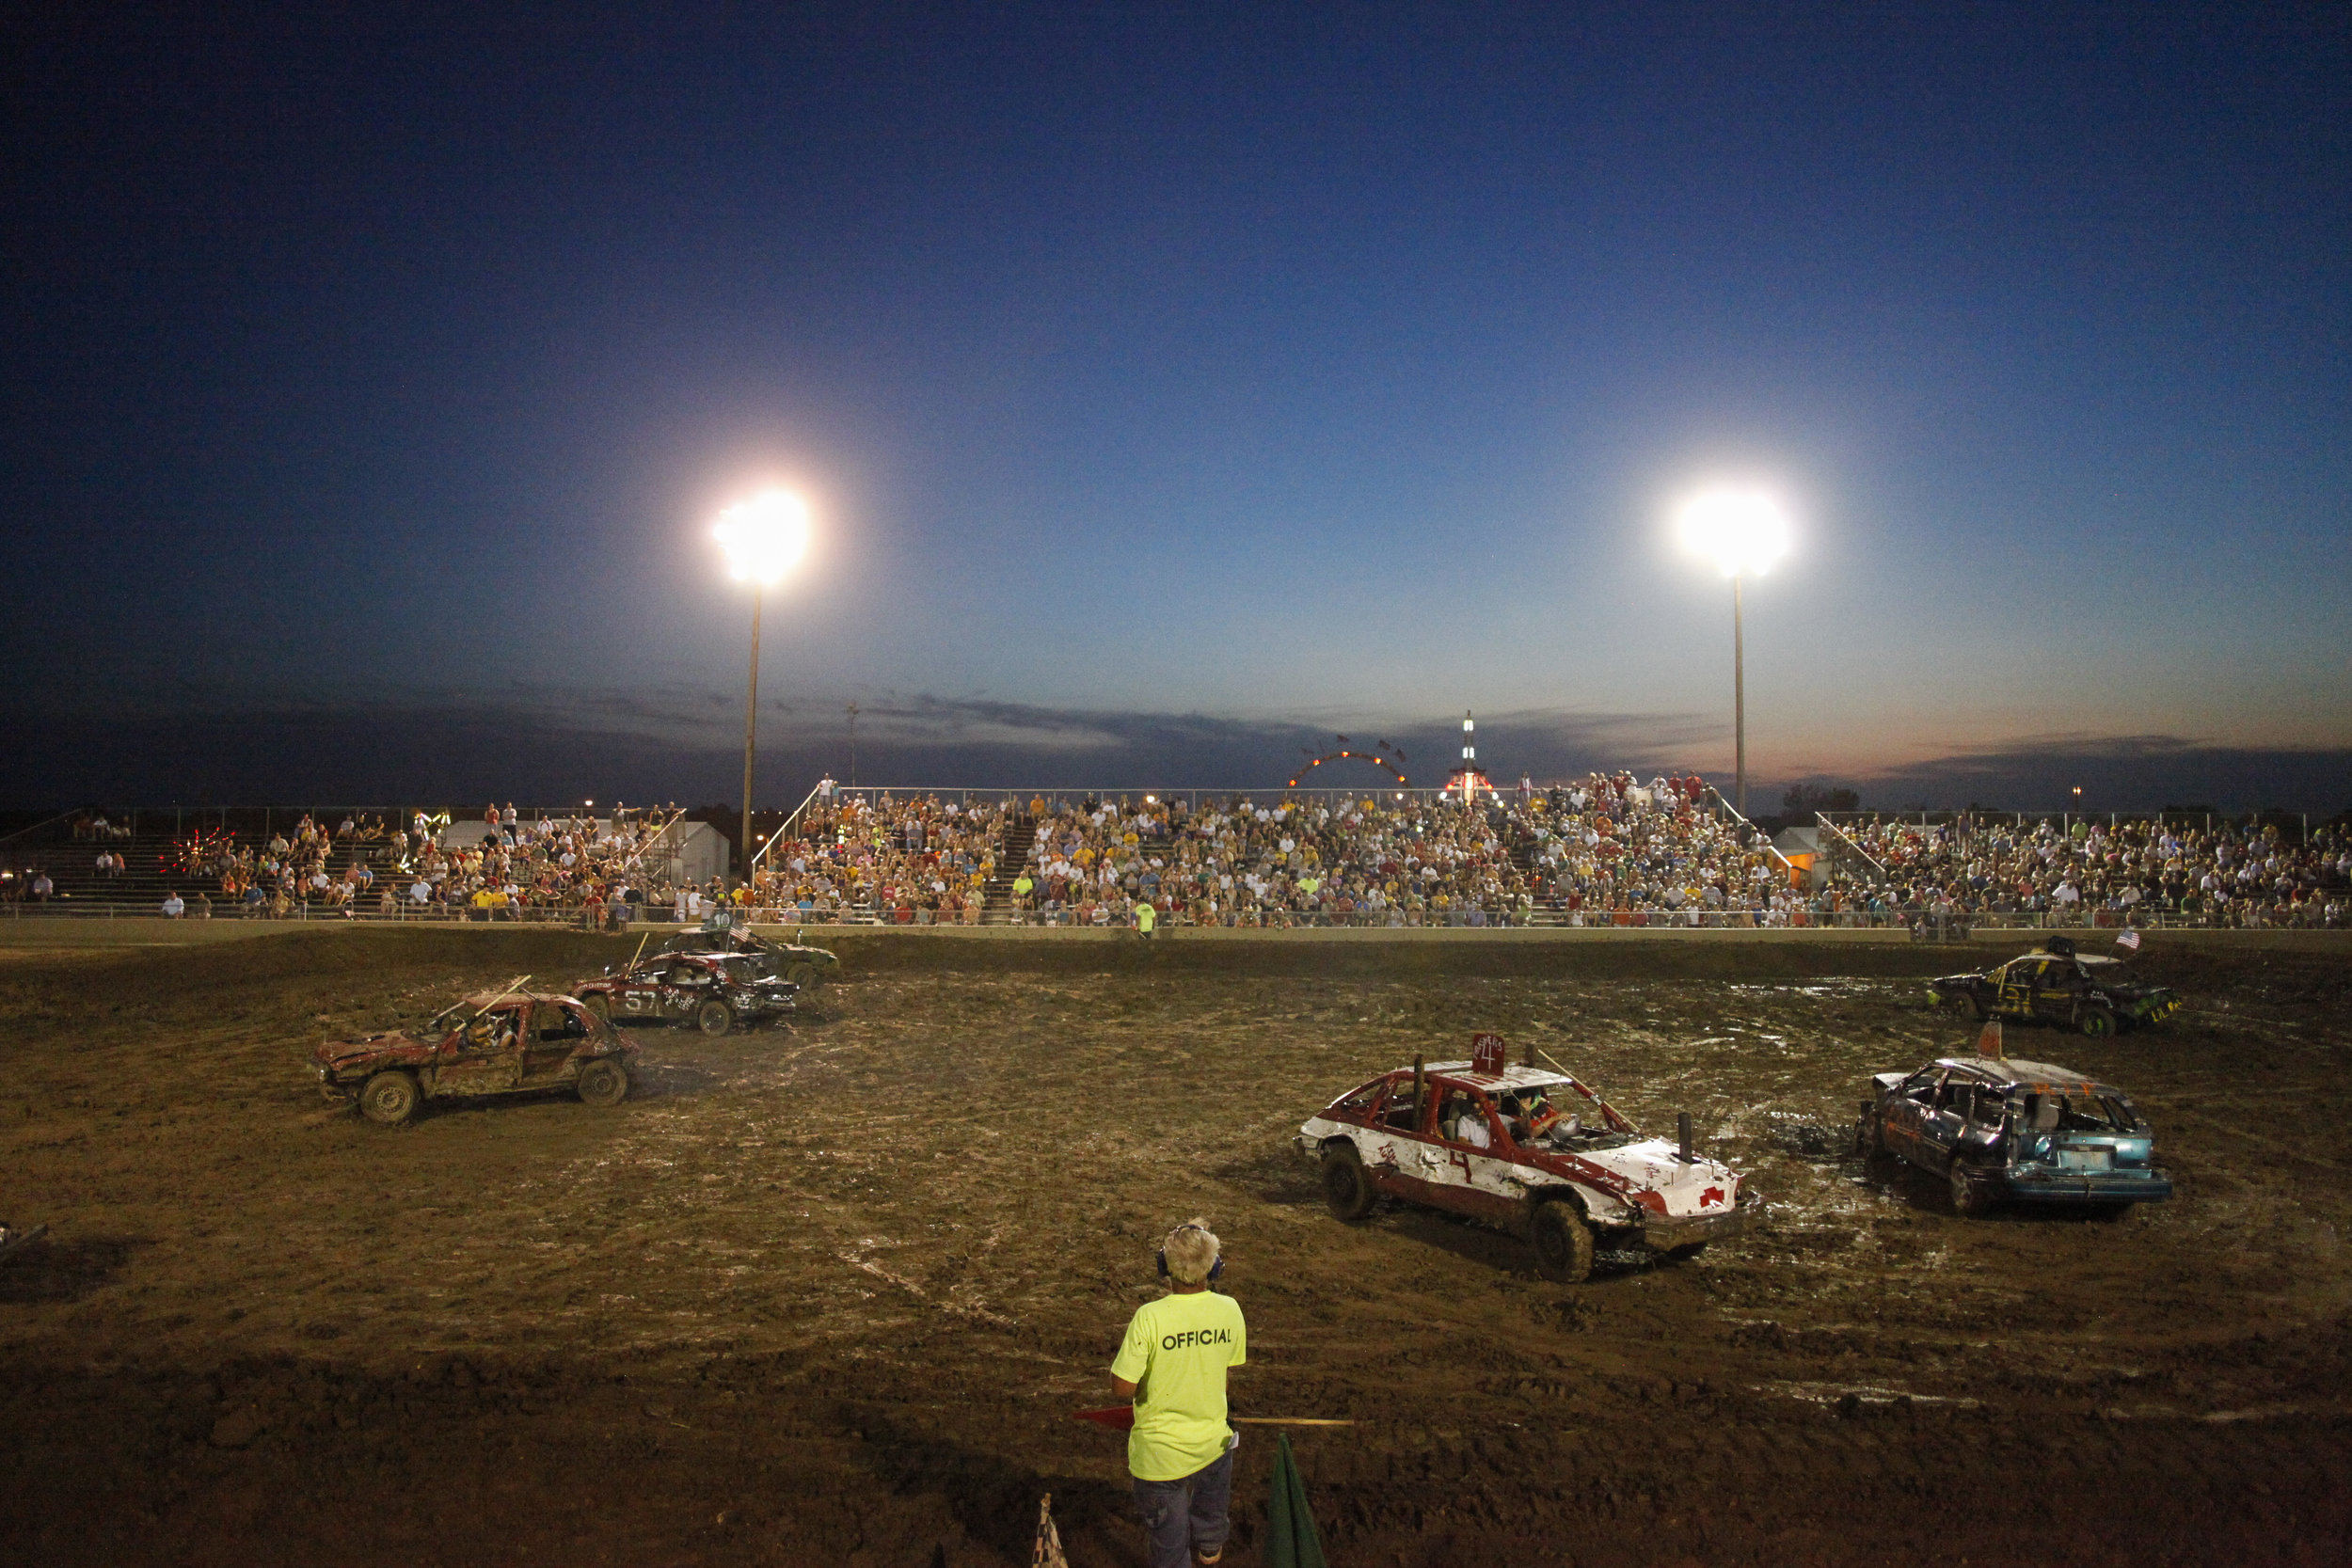 Demolition Derby participants wait to restart the race after a short break Wednesday evening, July 25, 2012 at Boone County Fairgrounds.